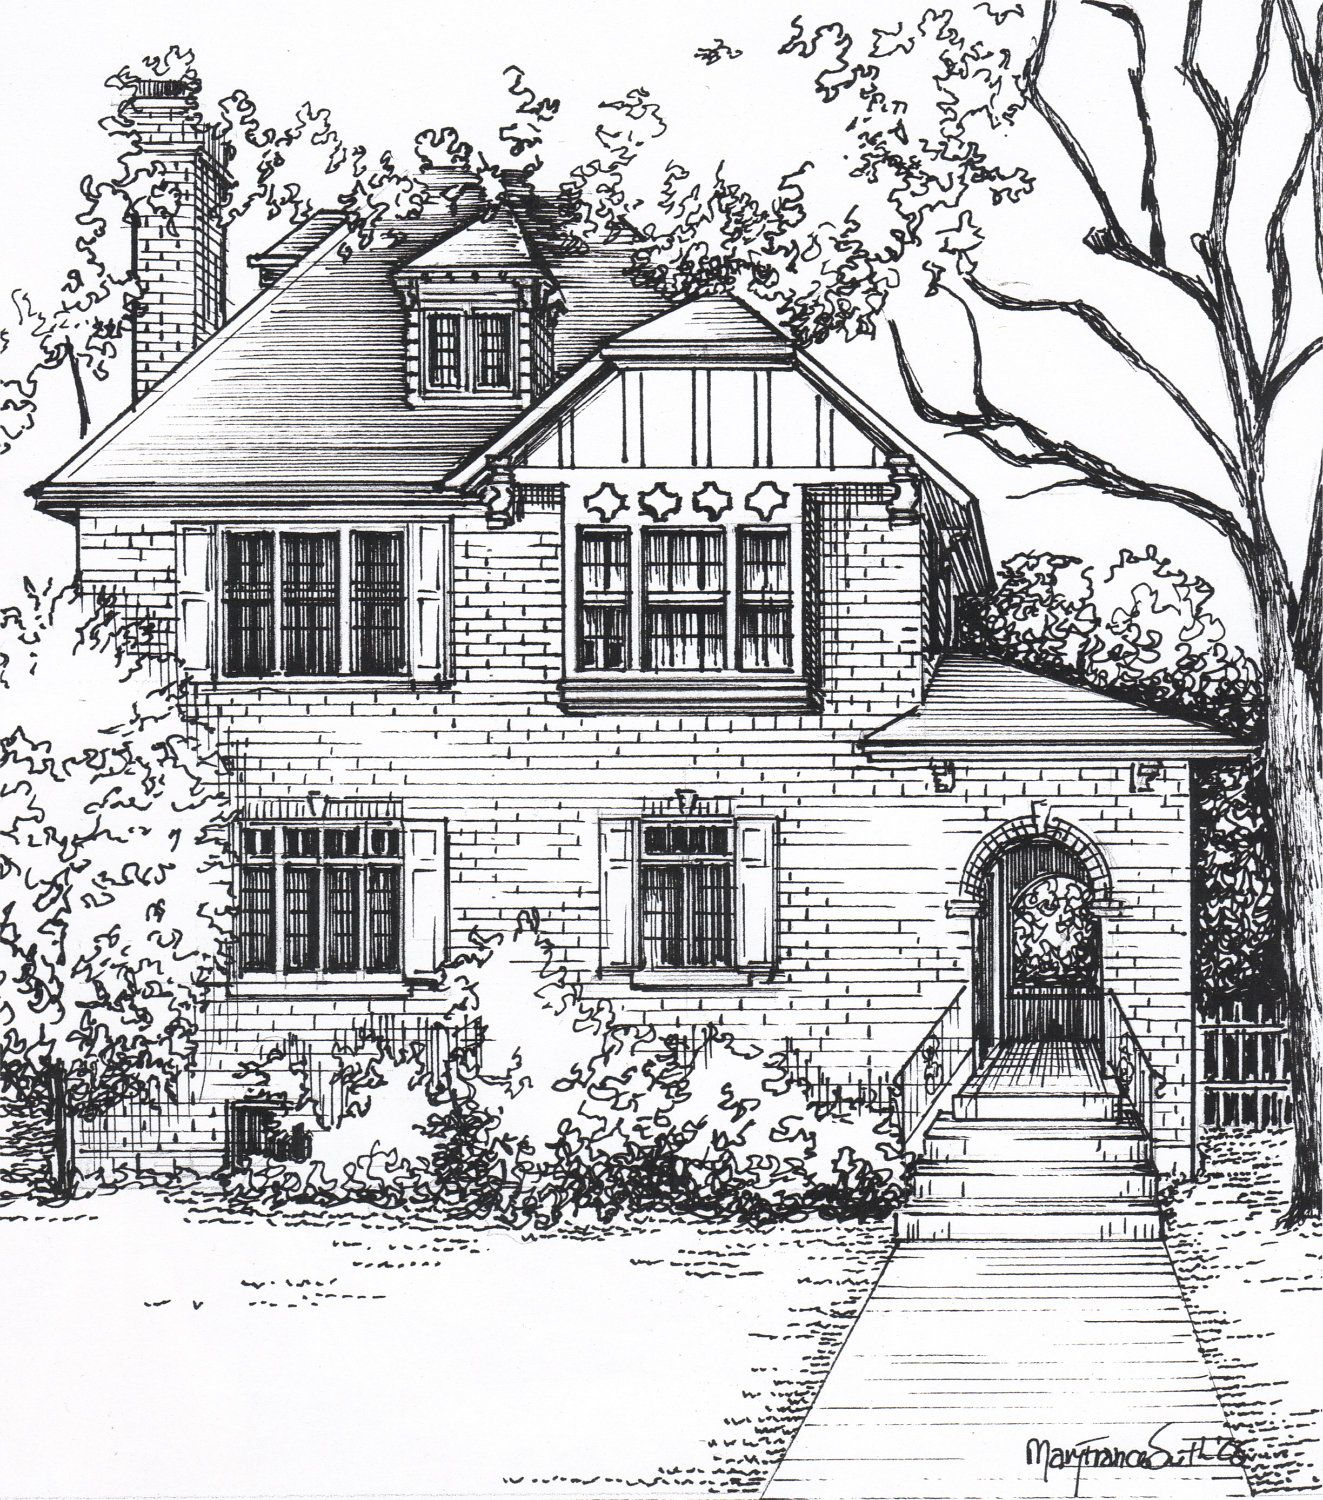 Looking For A Unique Gift? Do You Know Of Someone Who Would Love A Hand  Drawn Custom Portrait Of Their House, Creating A Personal Piece Of